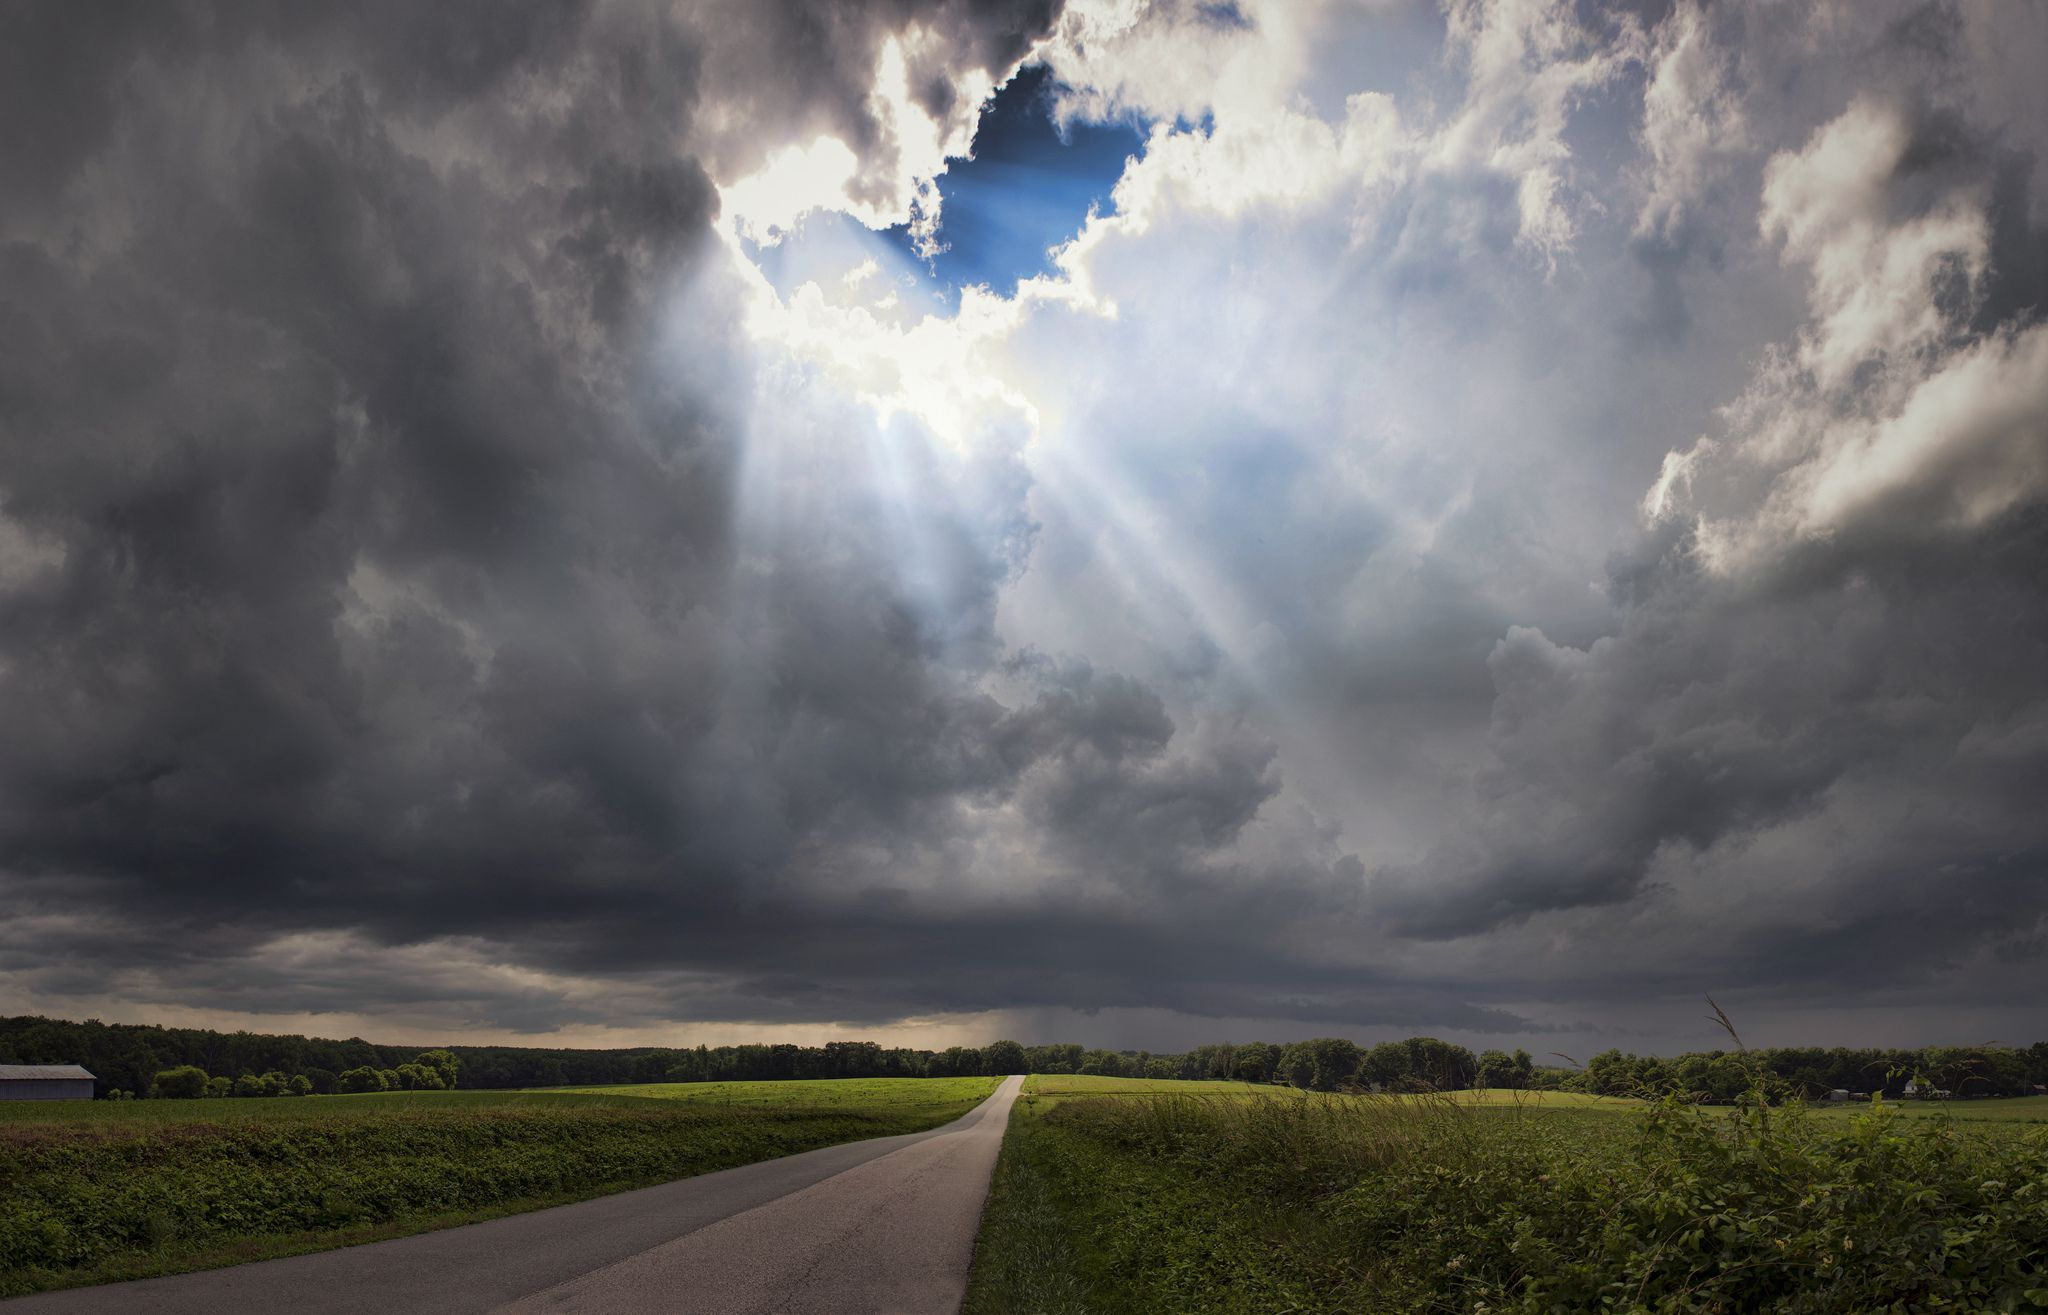 Storm Clouds Google Search Sky Pic Clouds Landscape Trees Hd wallpaper sunset clouds road hills